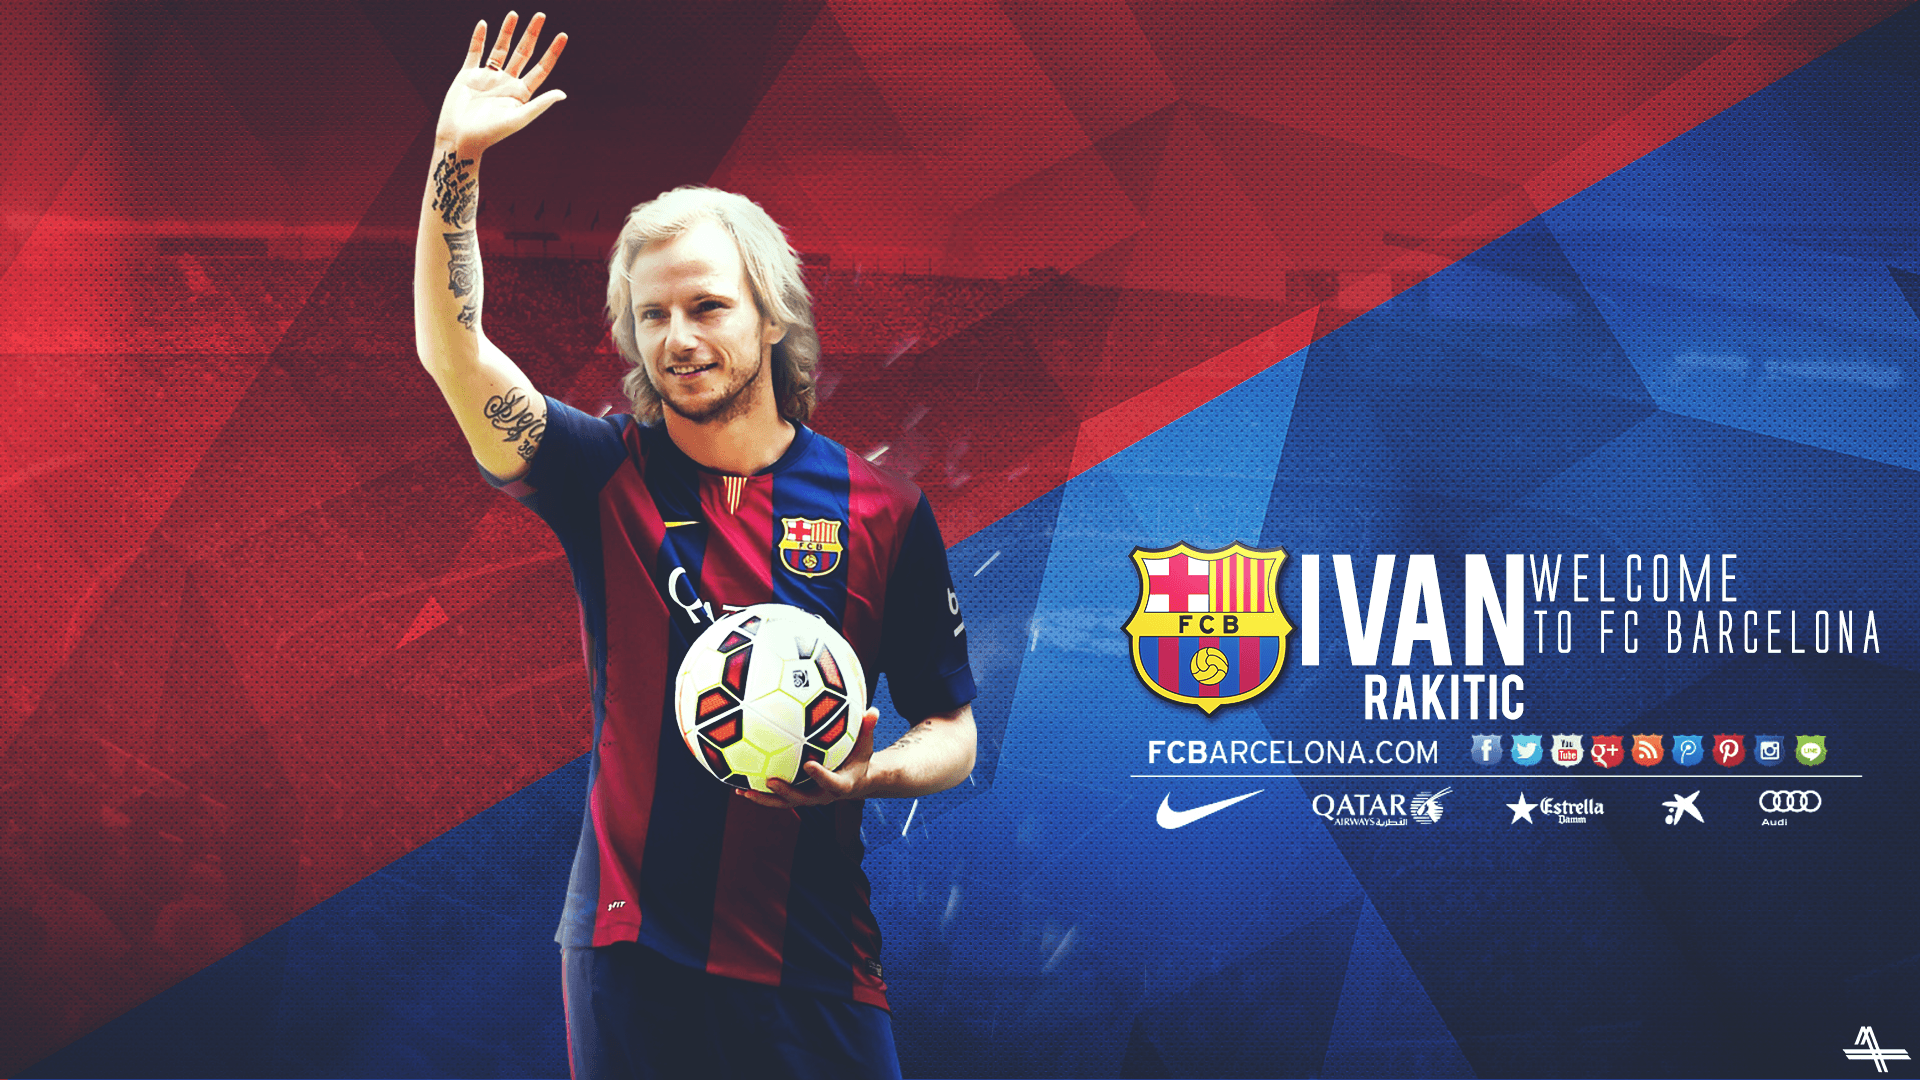 1920x1080 Rakitic Wallpapers